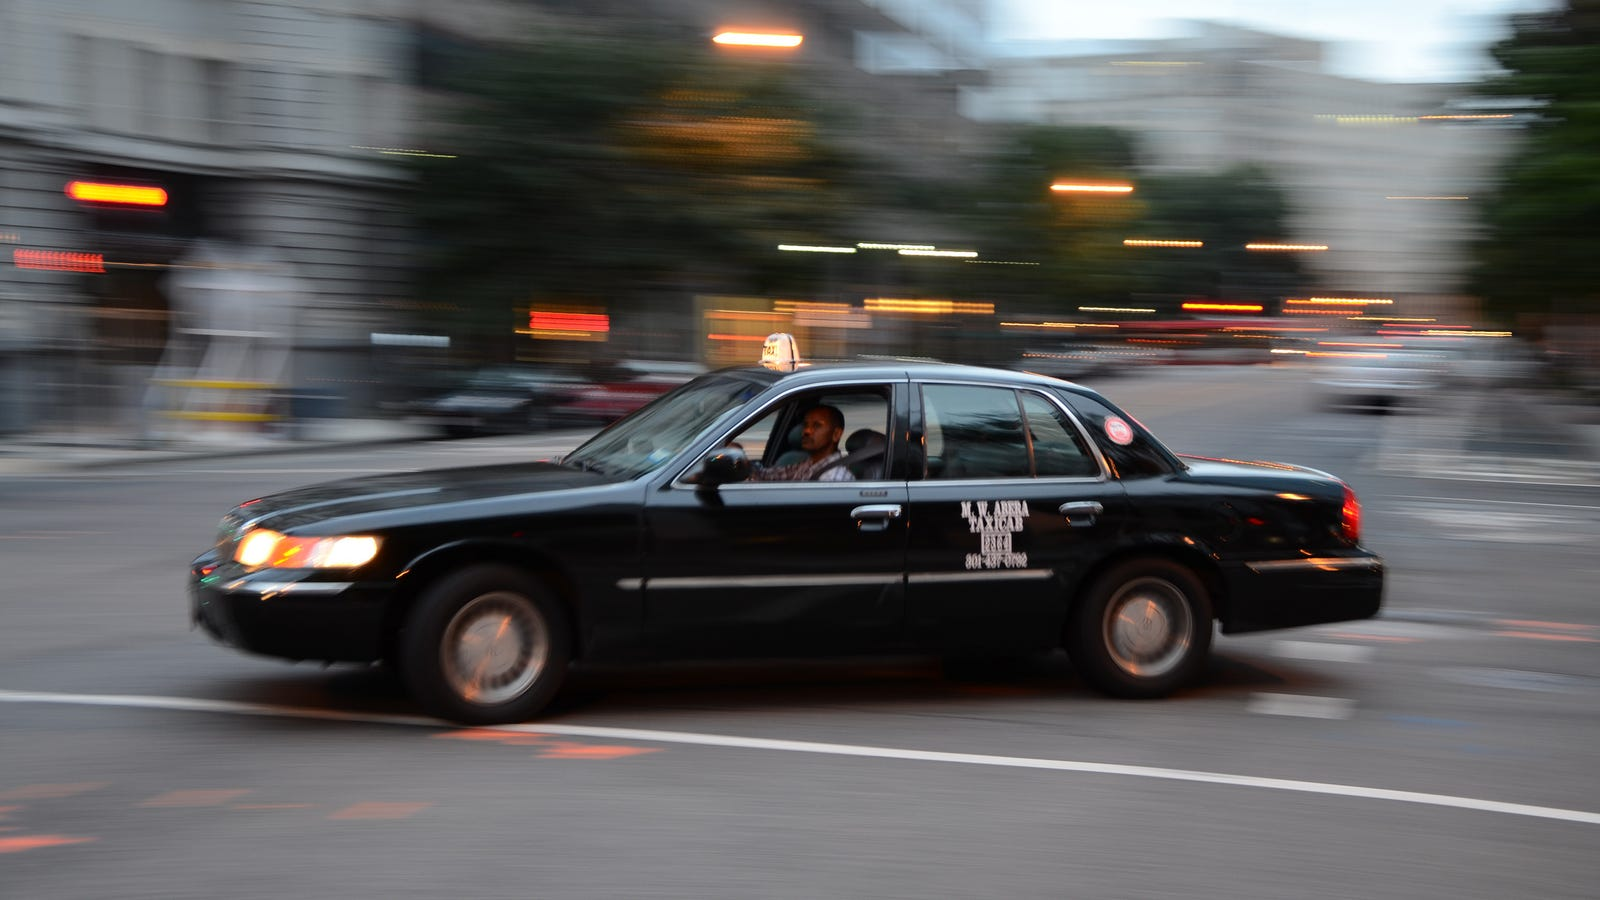 d c taxi drivers gridlock downtown to protest uber and lyft. Black Bedroom Furniture Sets. Home Design Ideas